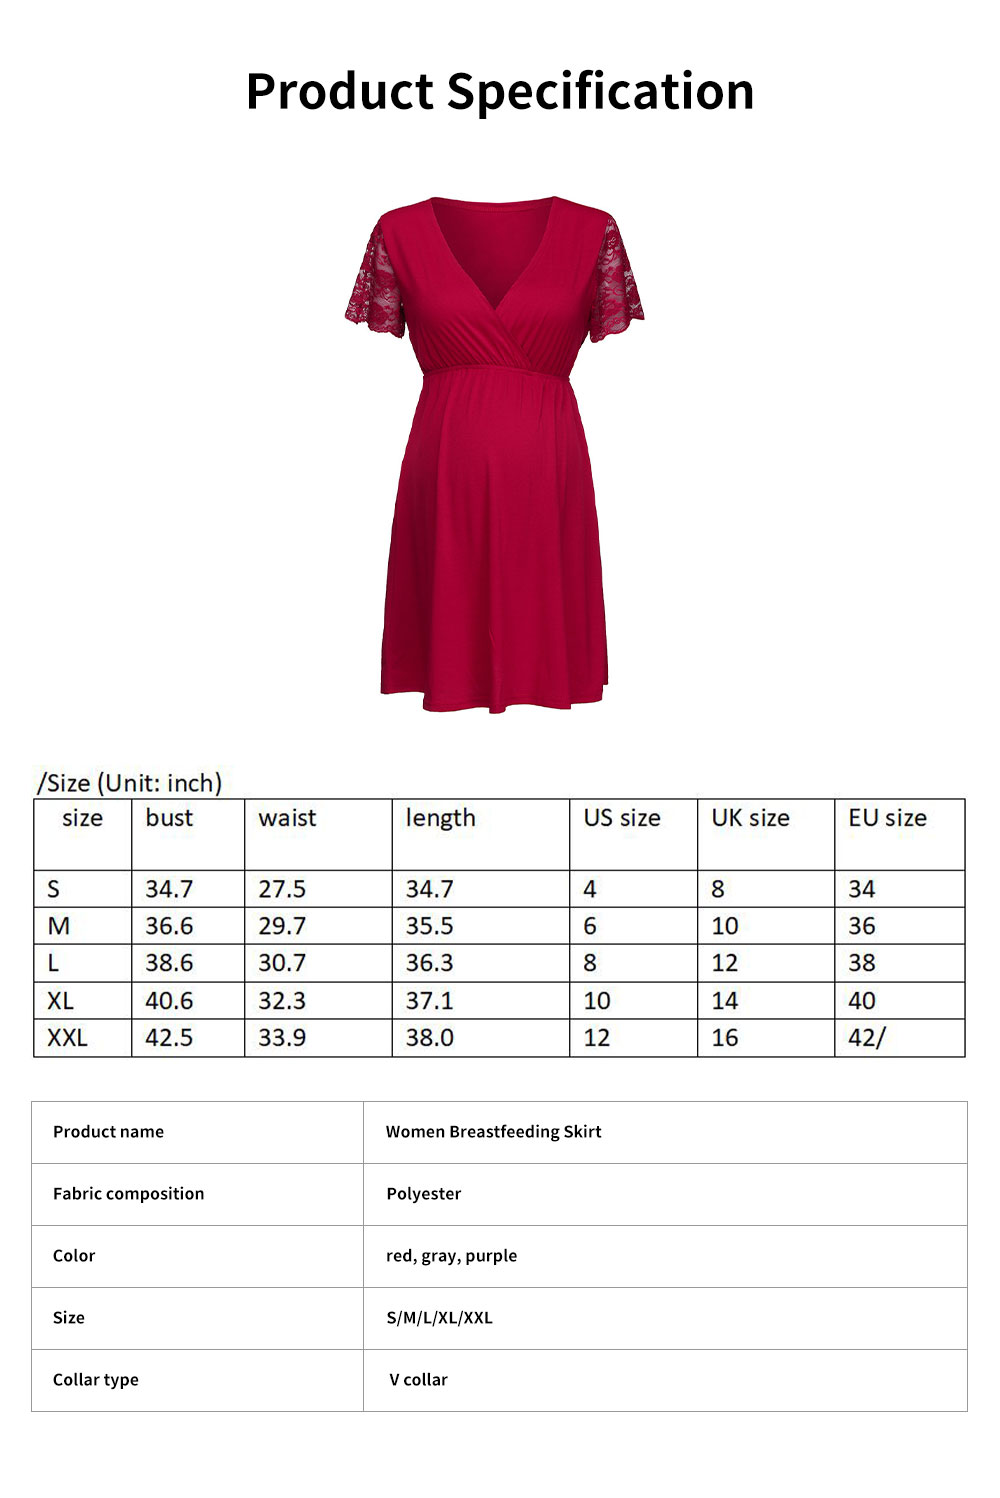 Lucky Lace Short Sleeve Stitching Dress for Pregnant Women, Lactation Dress, Maternity Dress 6